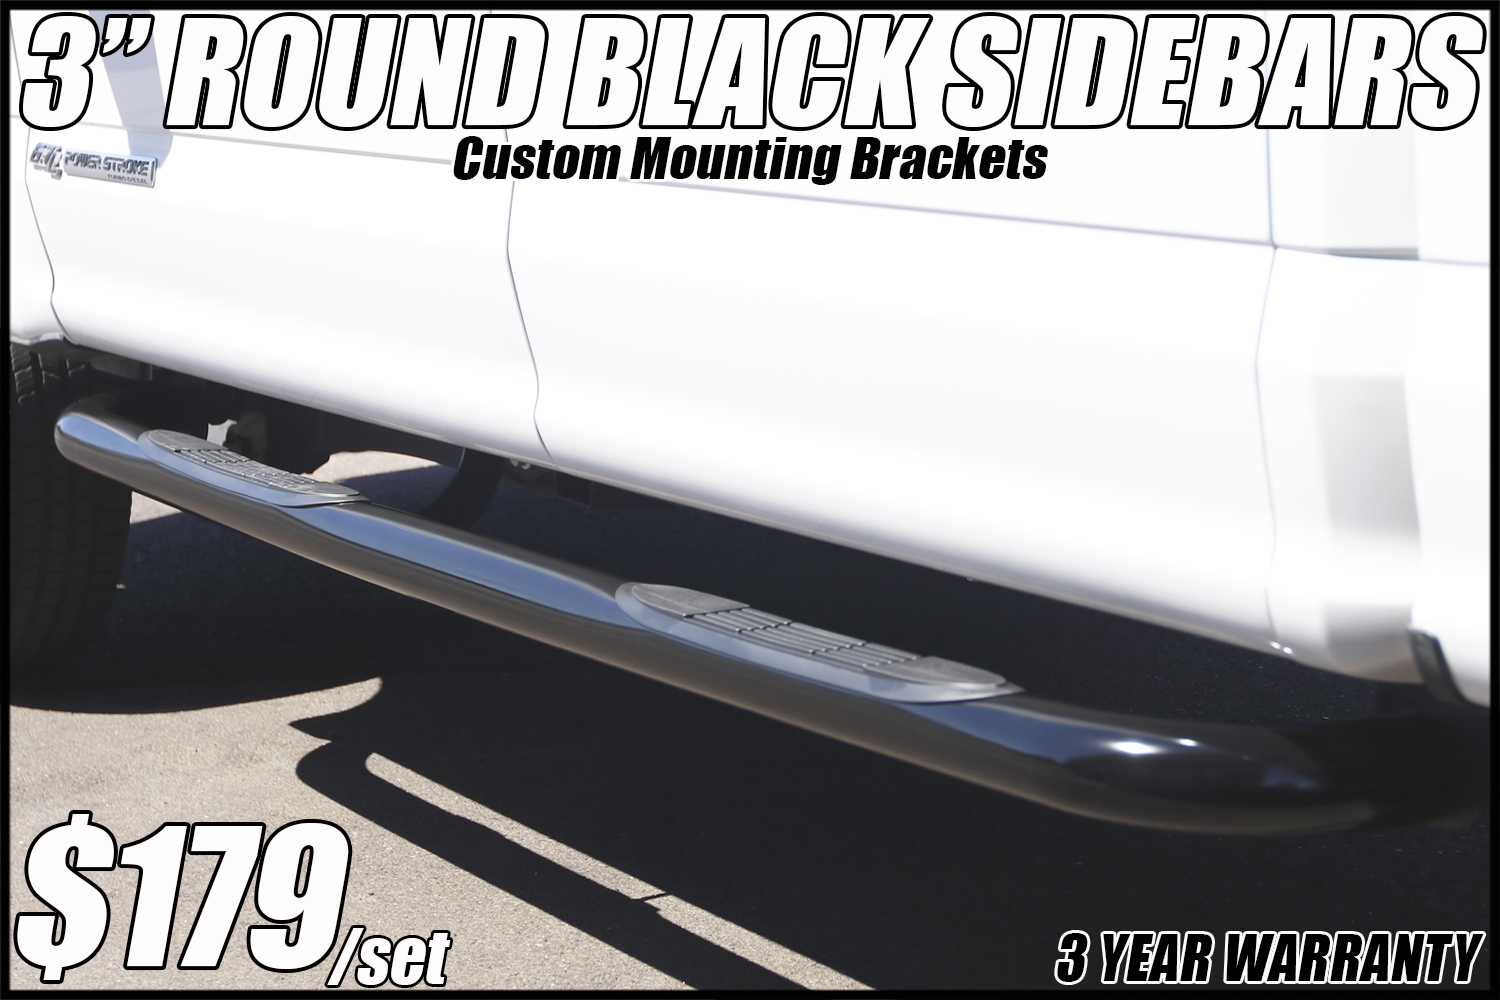 3 inch round black side bars